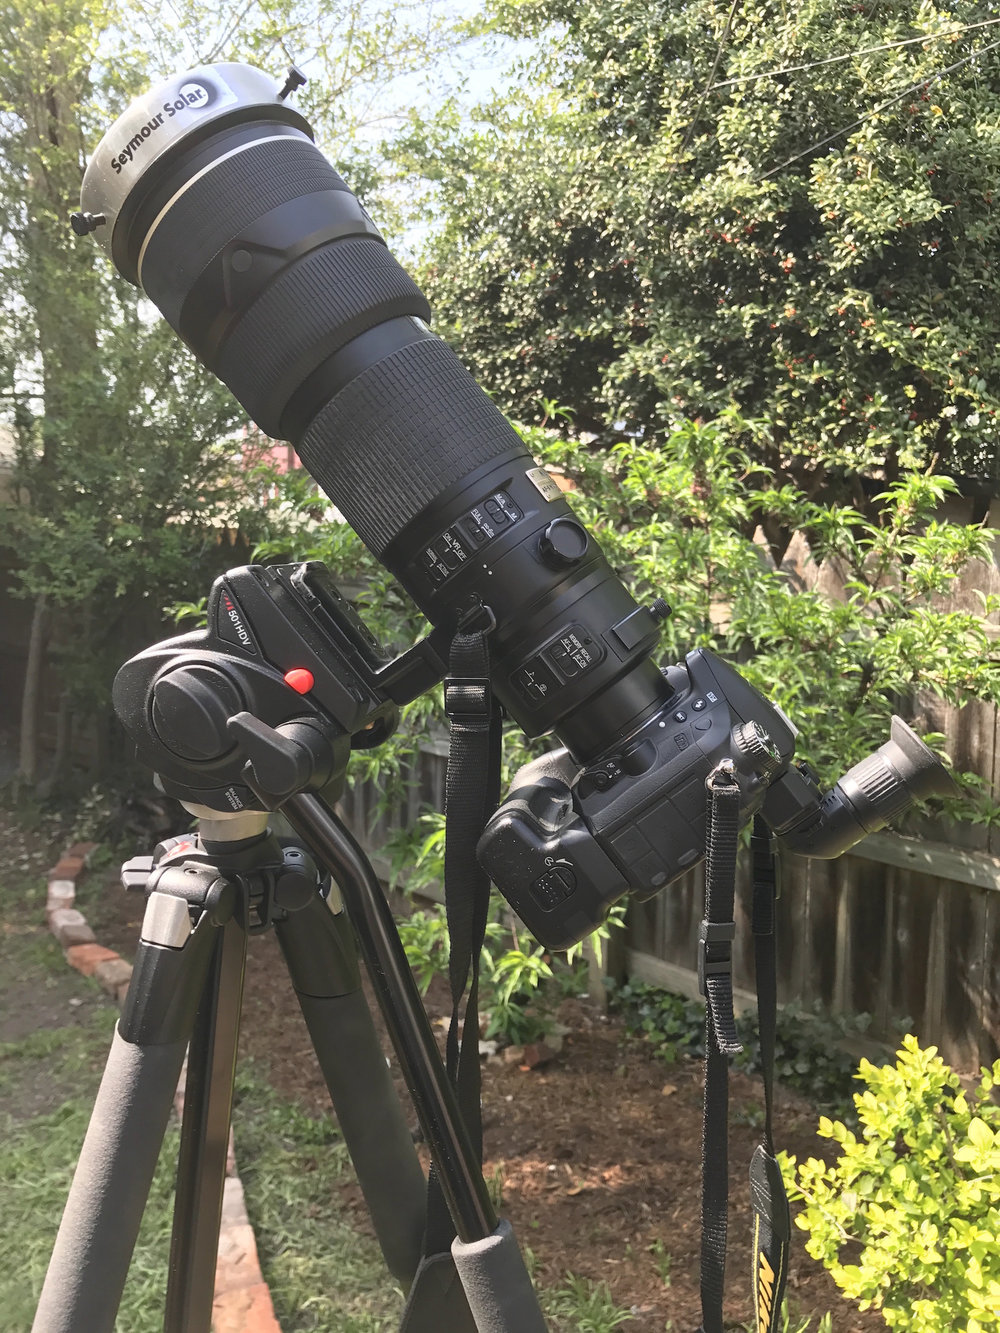 author rich schmidt will be southwest of St. Louis, MO (Ste. Genevieve) in the path of totality, hoping to get some photos with this Nikon digital camera and 400mm lens with solar filter for the partial phases.